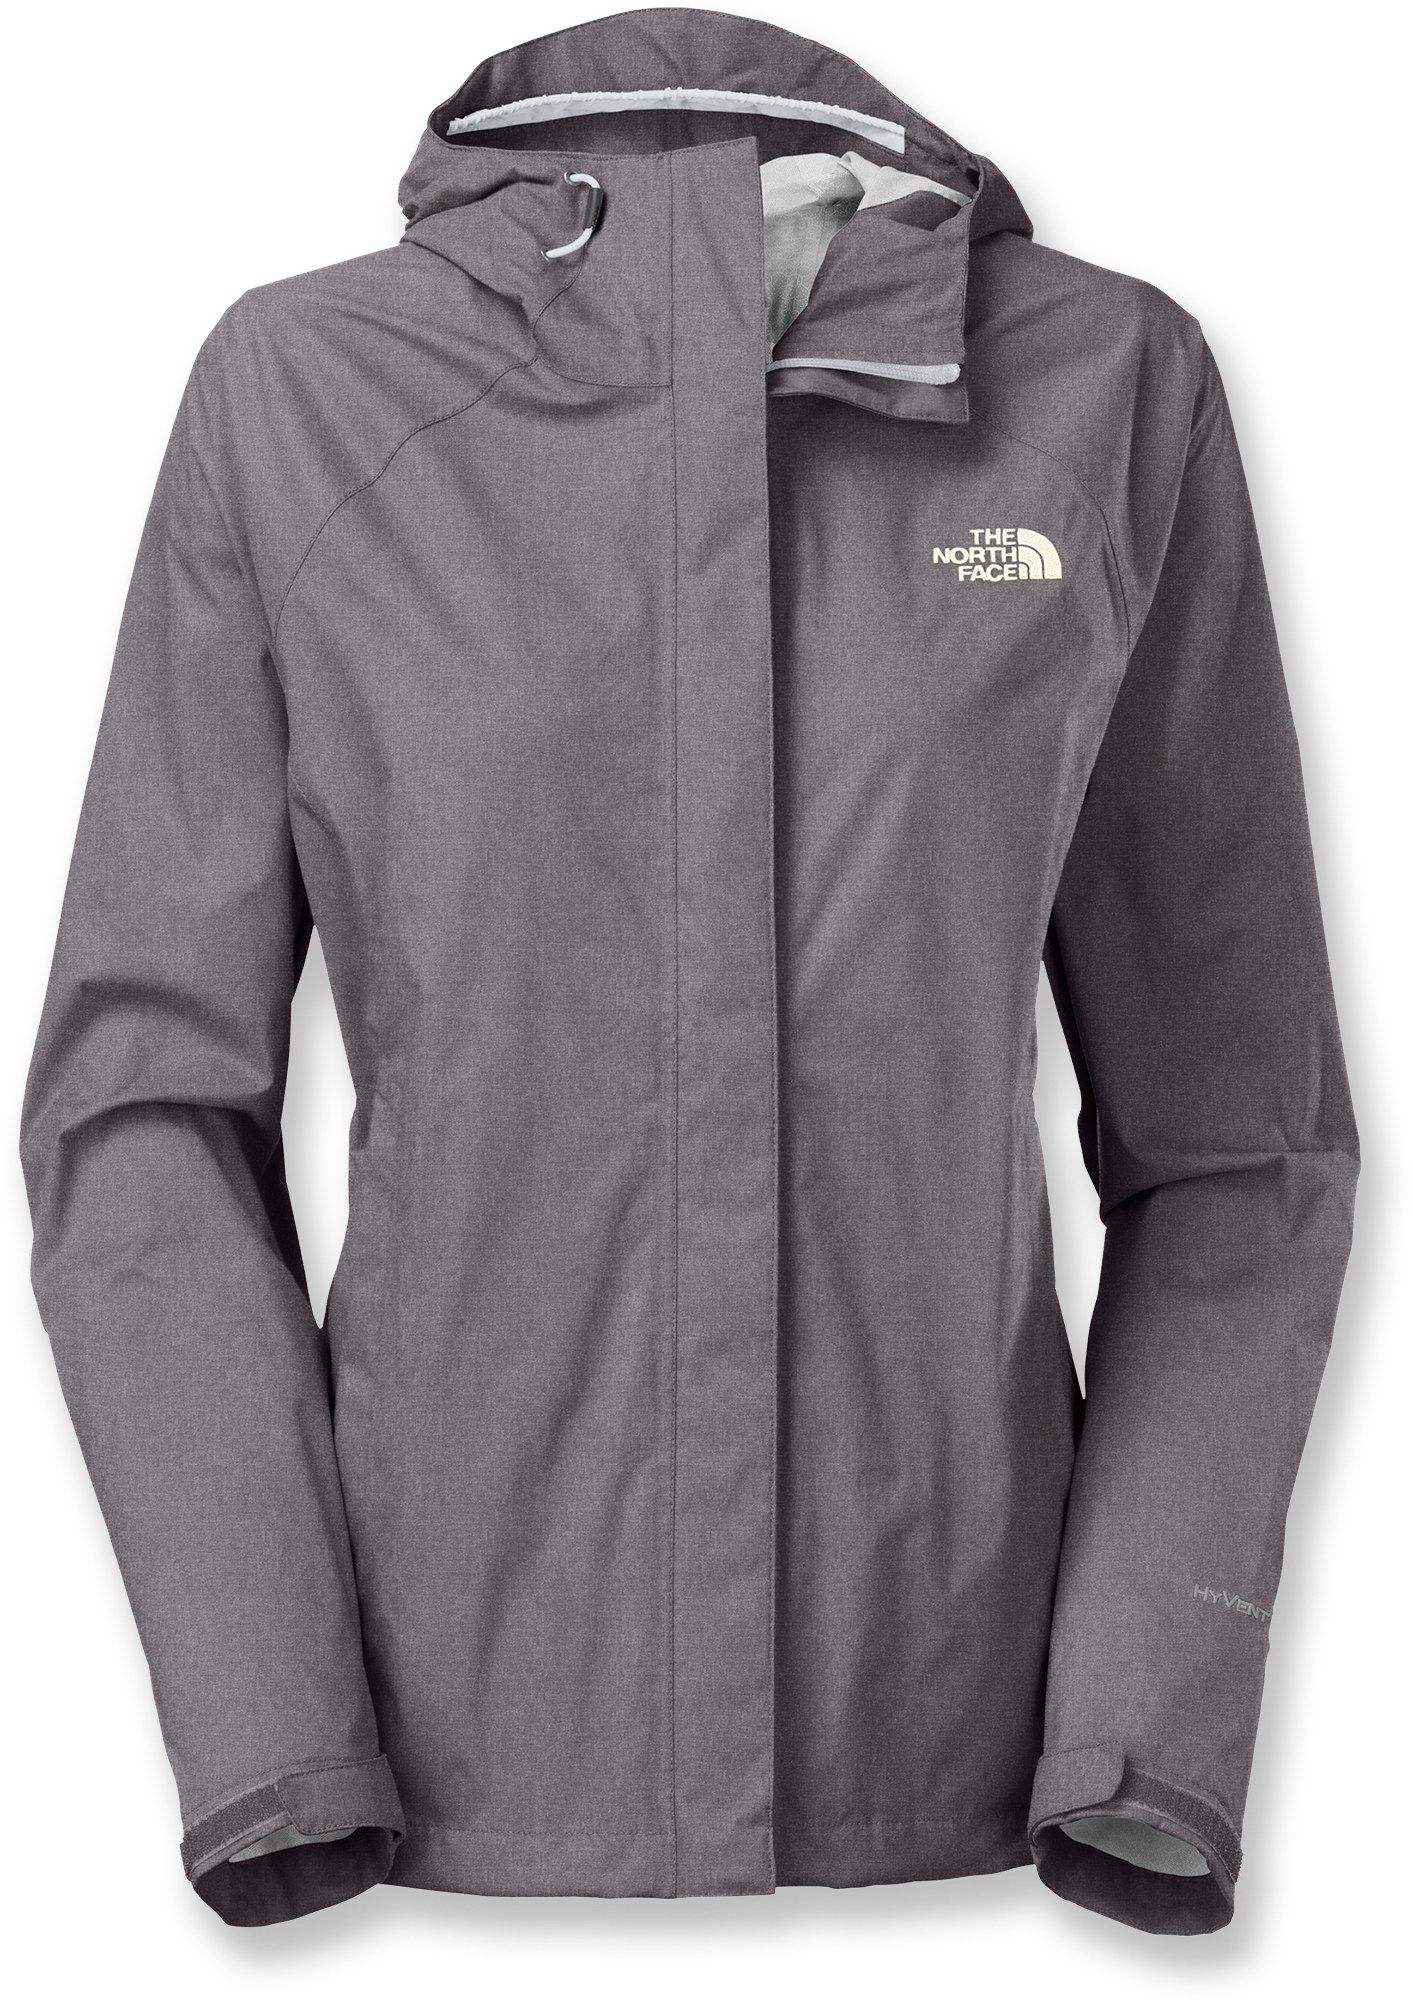 The North Face Venture Rain Jacket - Women s - High Rise Grey Heather Large c9110c01c54